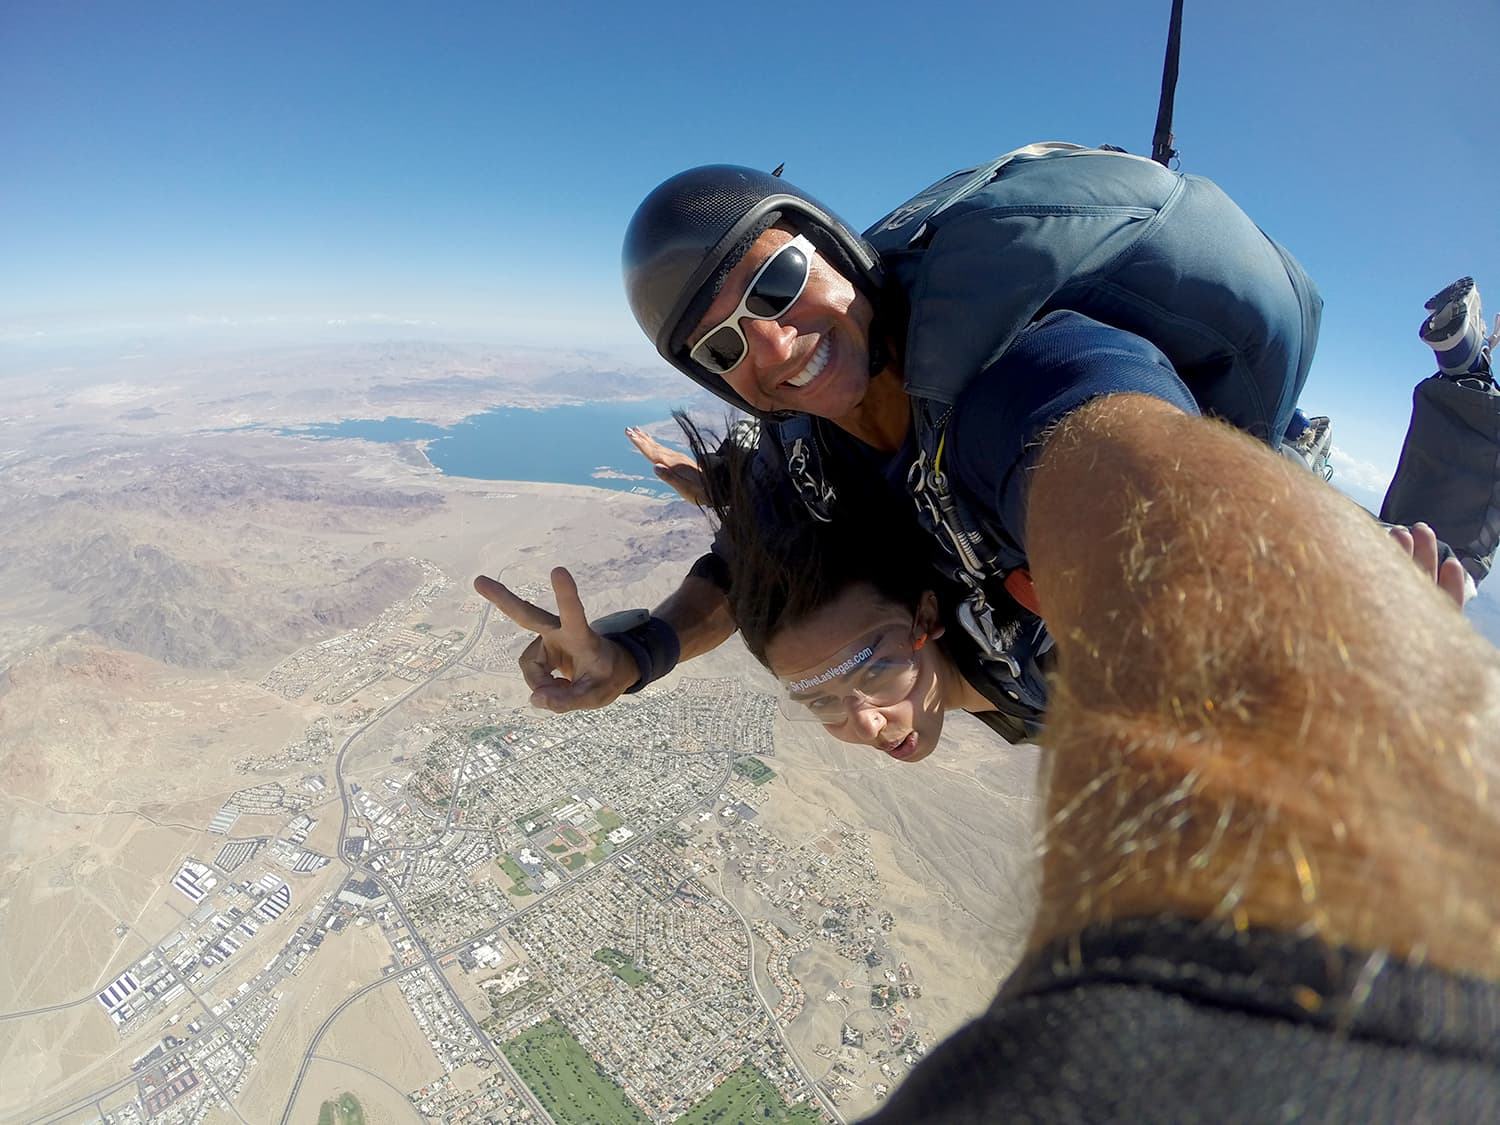 Skydiving over Nevada.